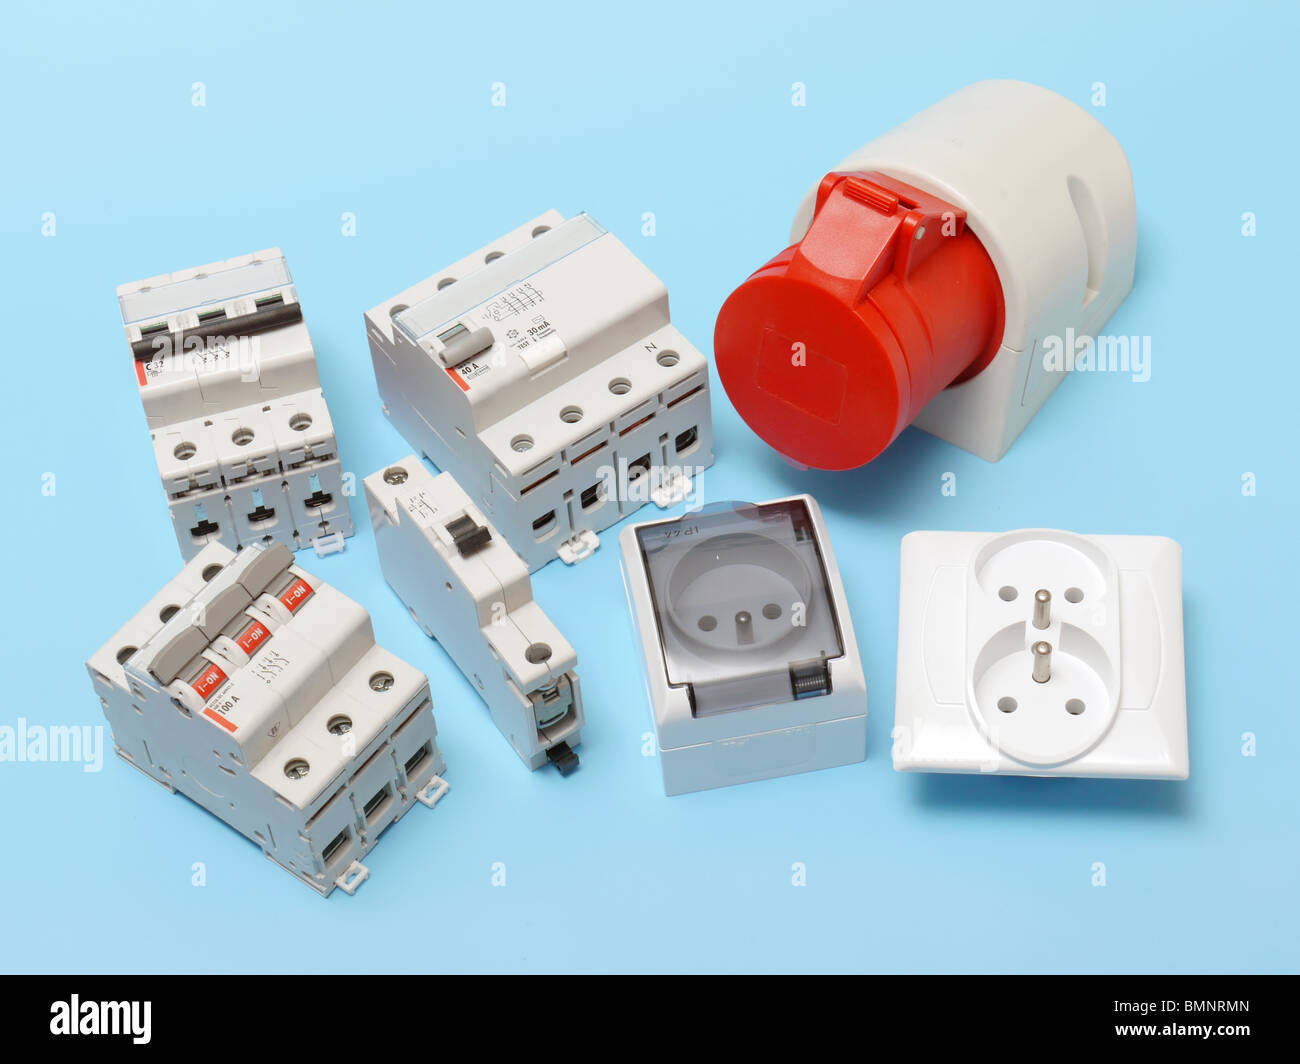 Electrical circuit breakers, main disconnect, power socket and 230 ...